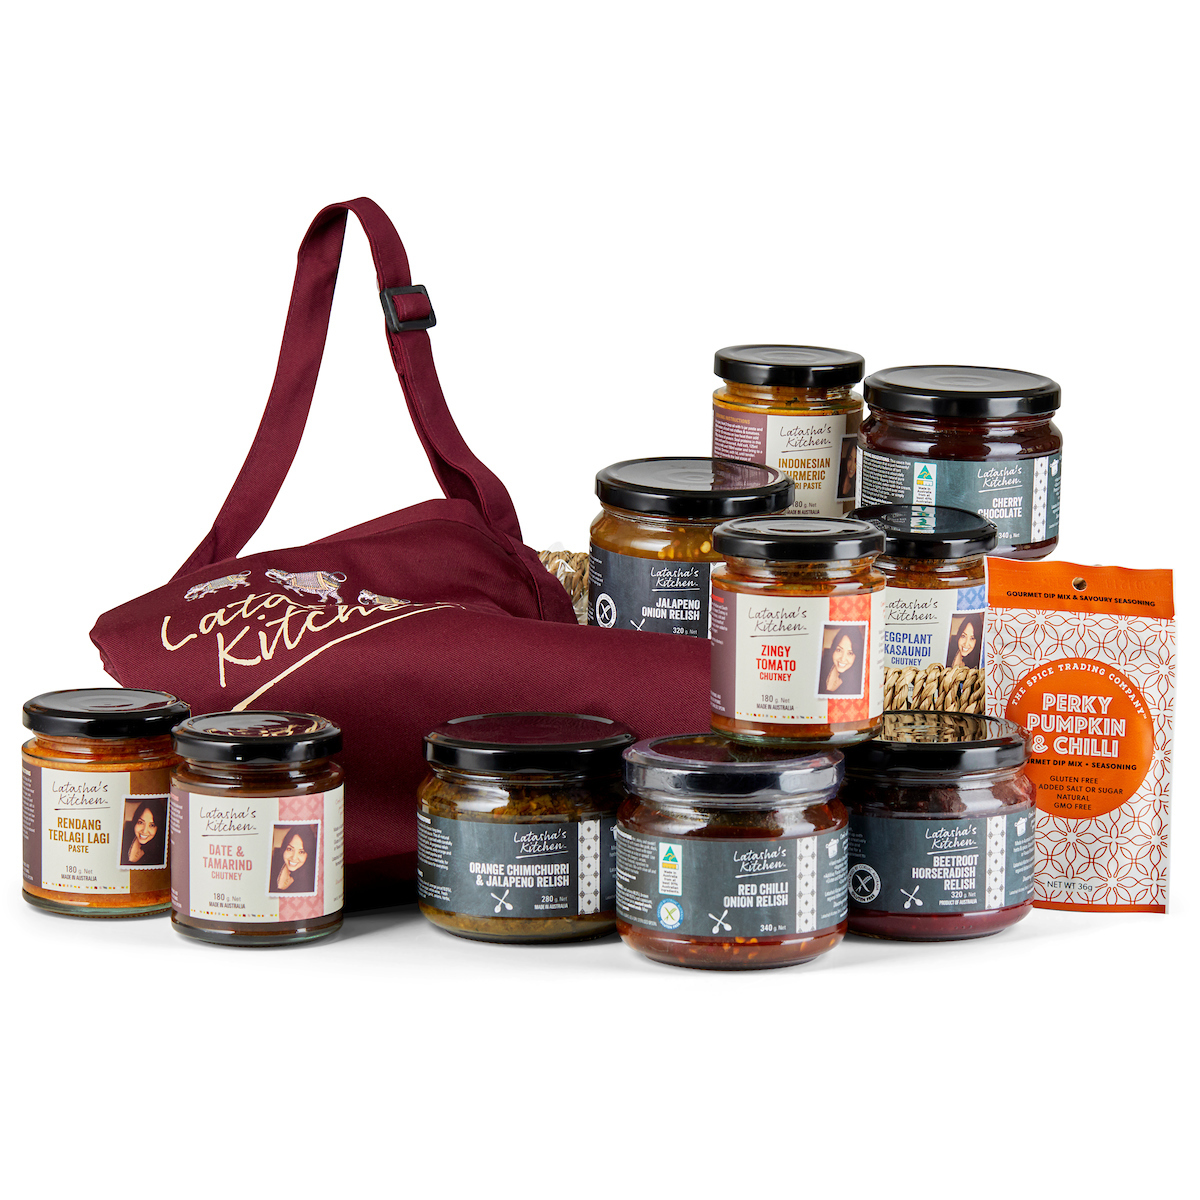 Nut Free & Vegan Hamper from Latasha's Kitchen